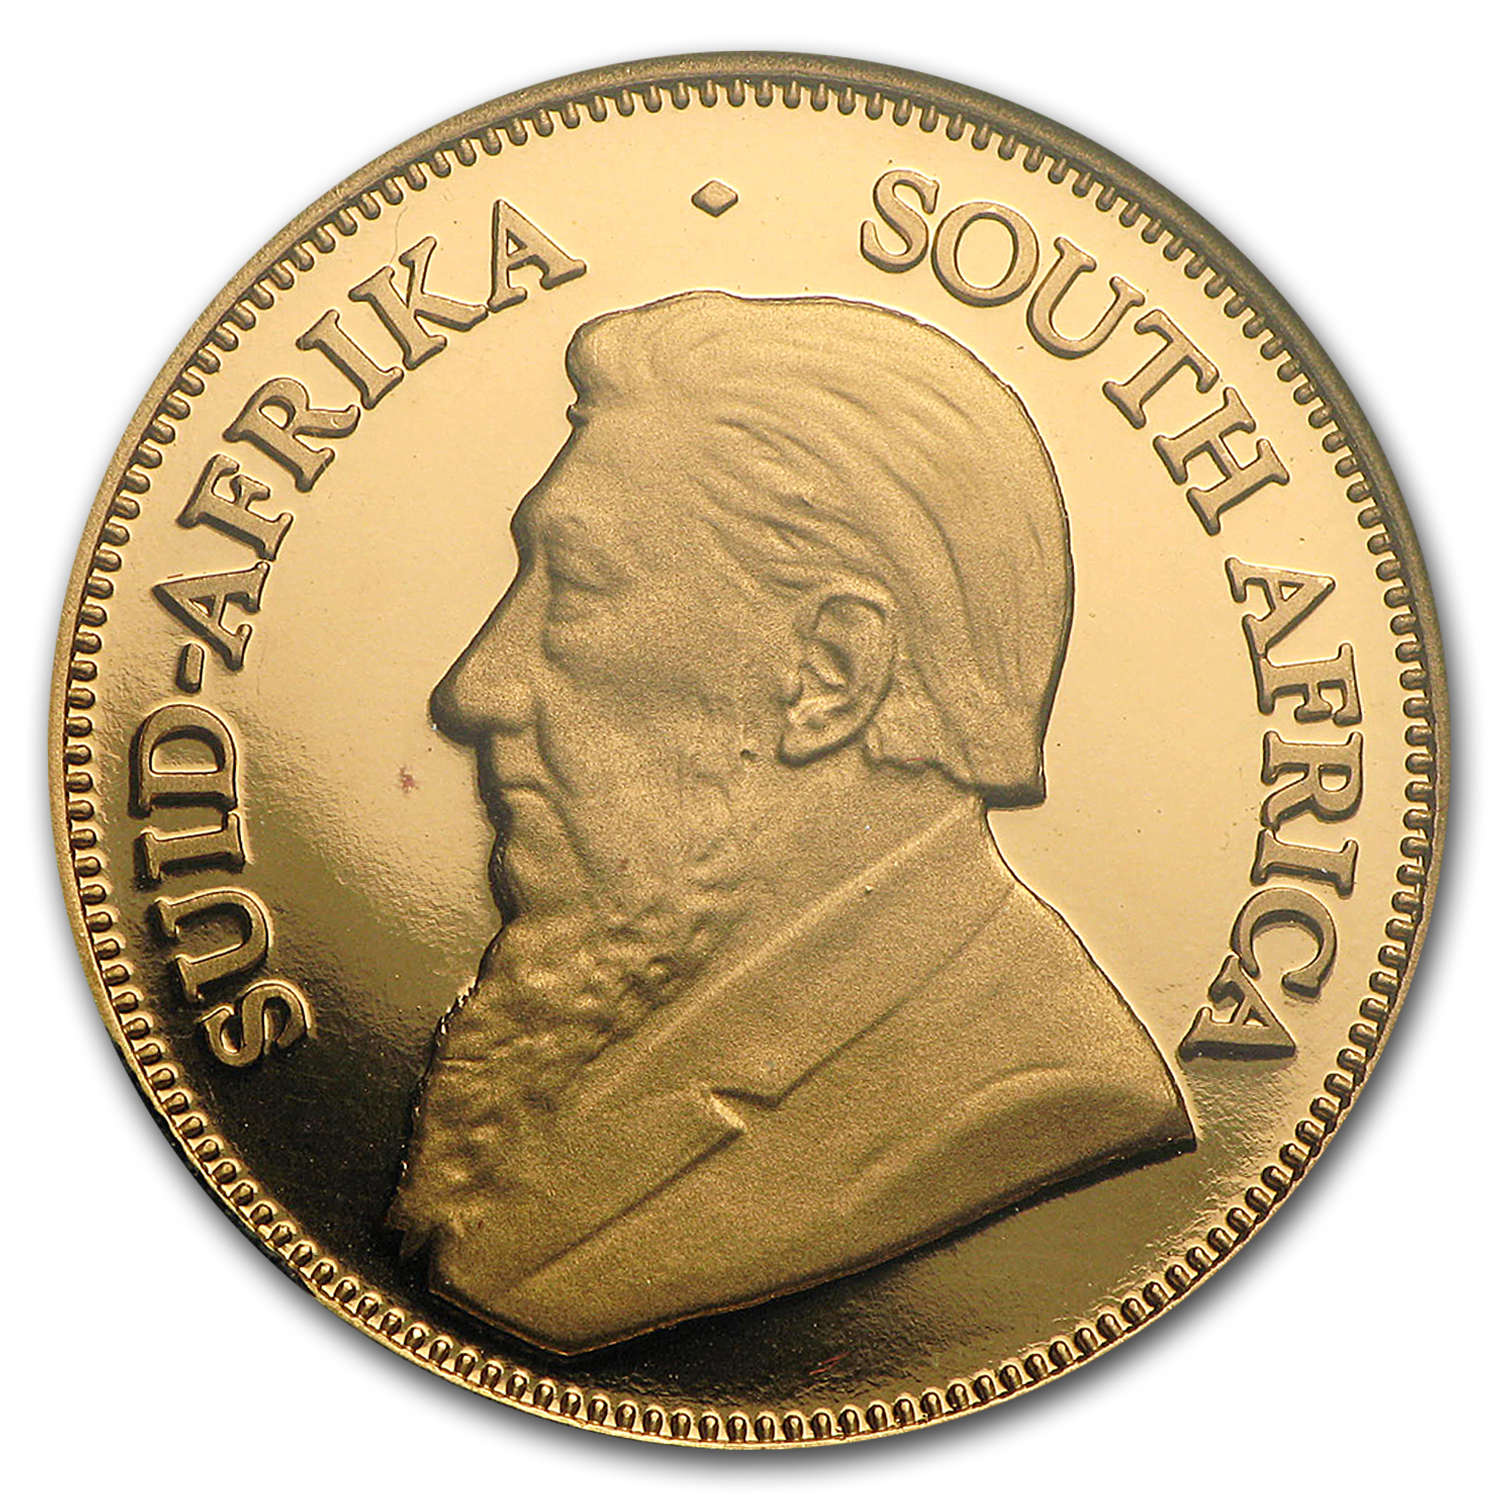 2005 1/4 oz Gold South African Krugerrand Proof